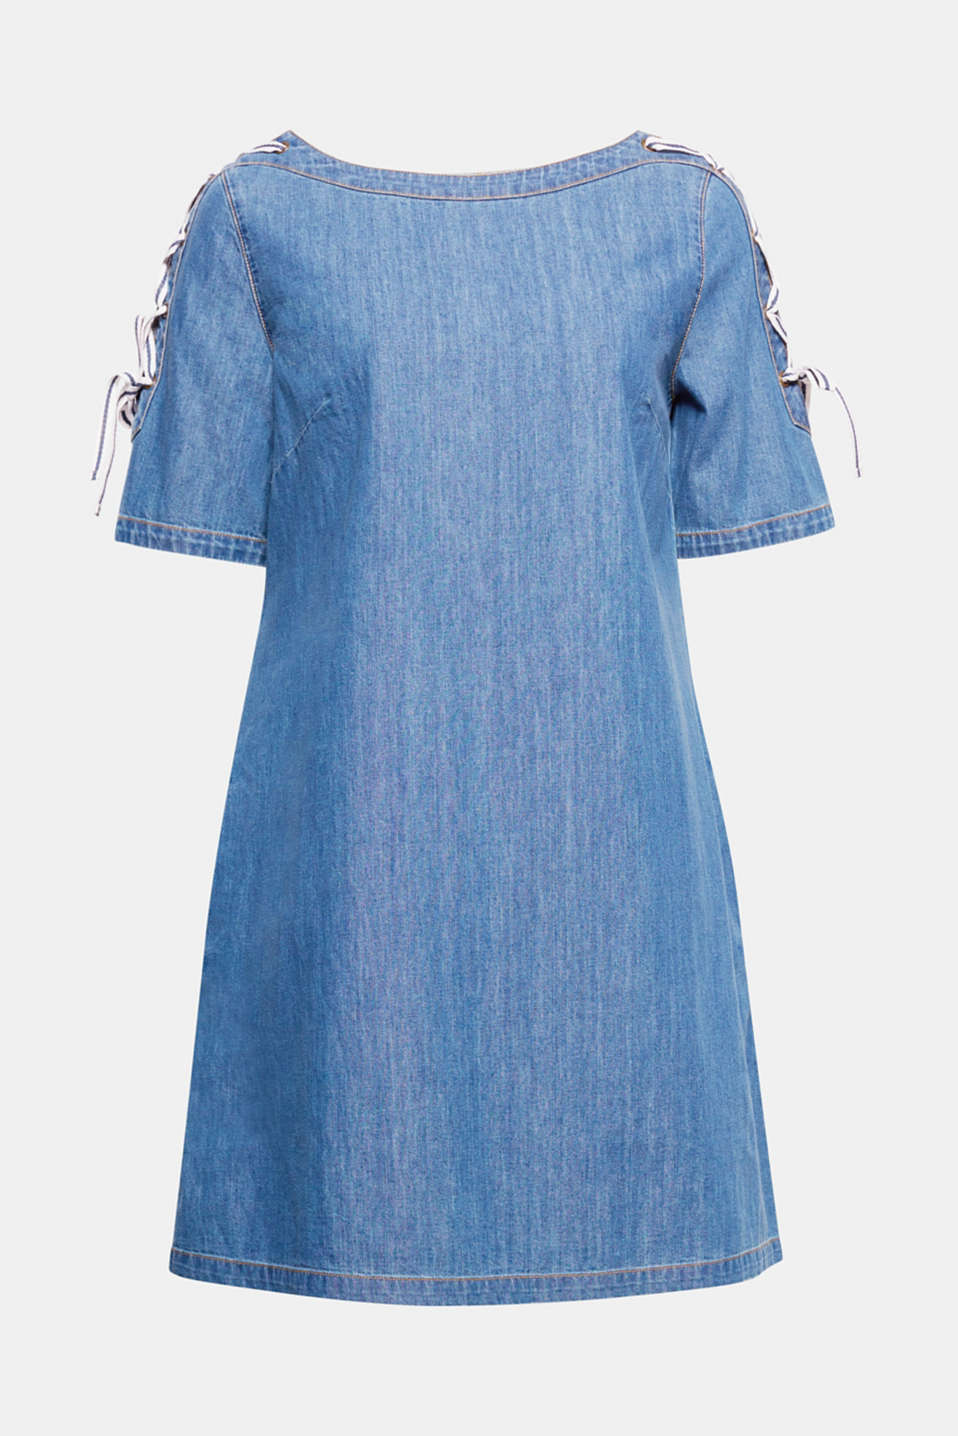 The decorative lacing on the sleeves gives these slightly flared denim dress its innovative, fashionable look.